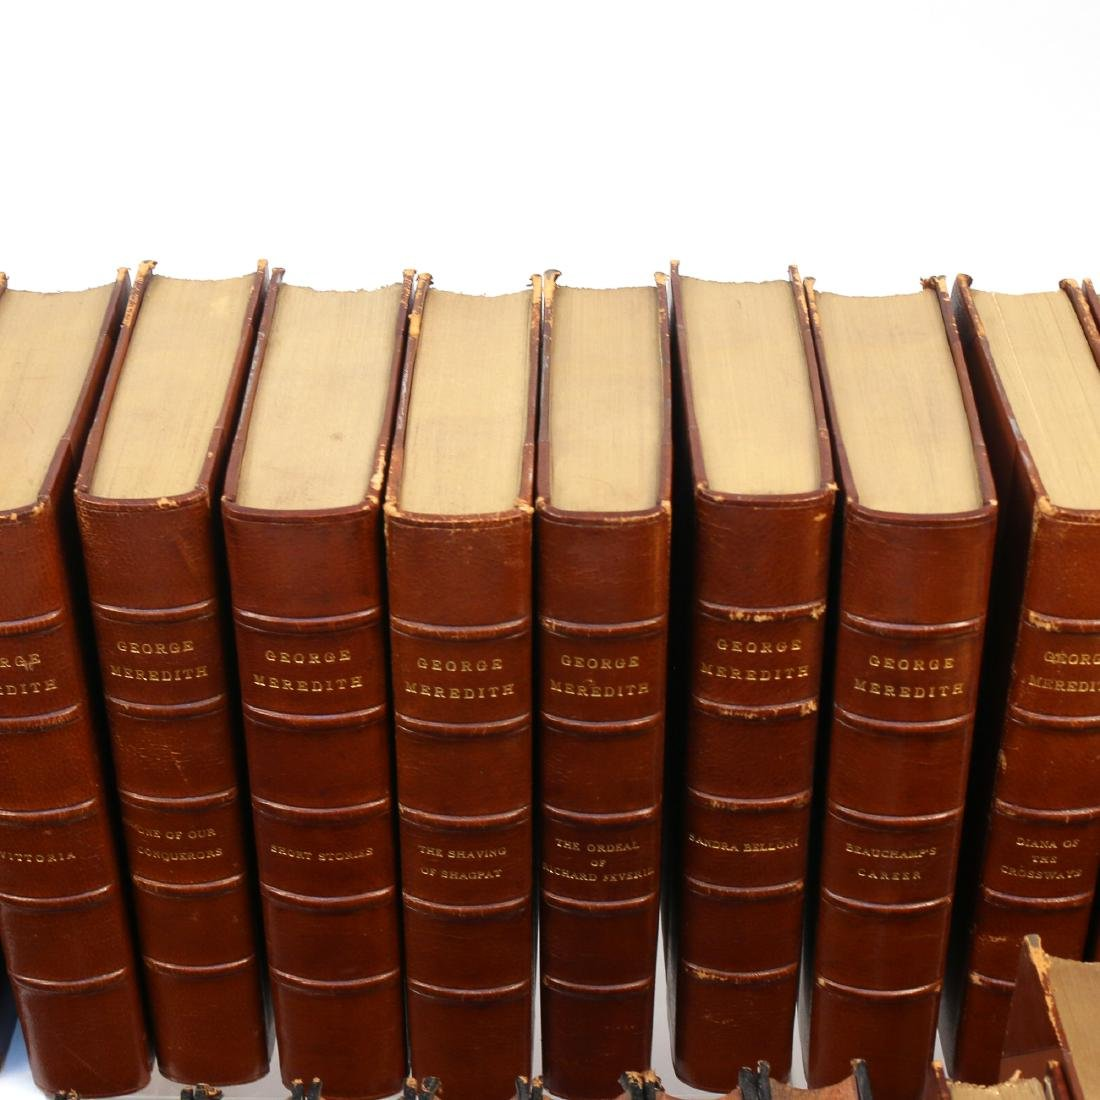 (53vol) [BINDINGS] MISC. LEATHER-BOUND BOOKS - 9